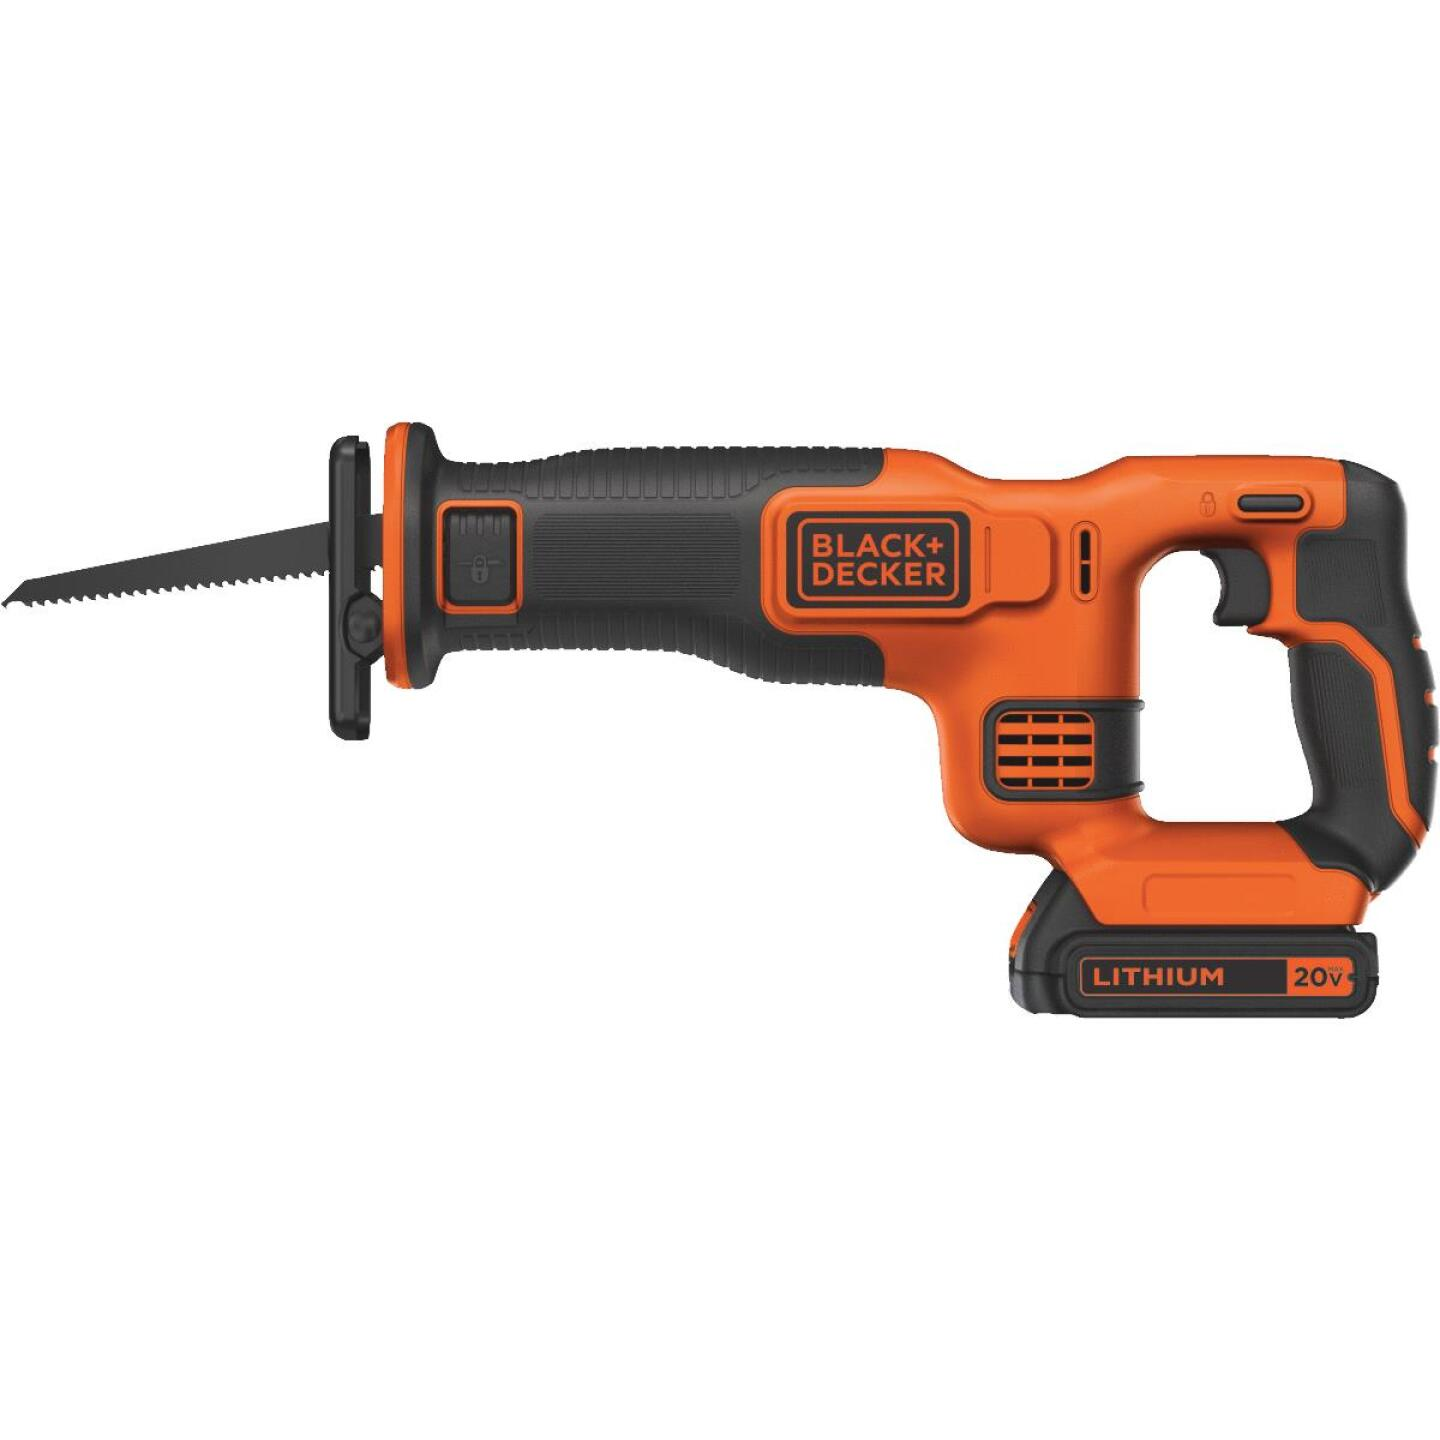 Black & Decker 20 Volt MAX Lithium-Ion Cordless Reciprocating Saw Kit Image 1